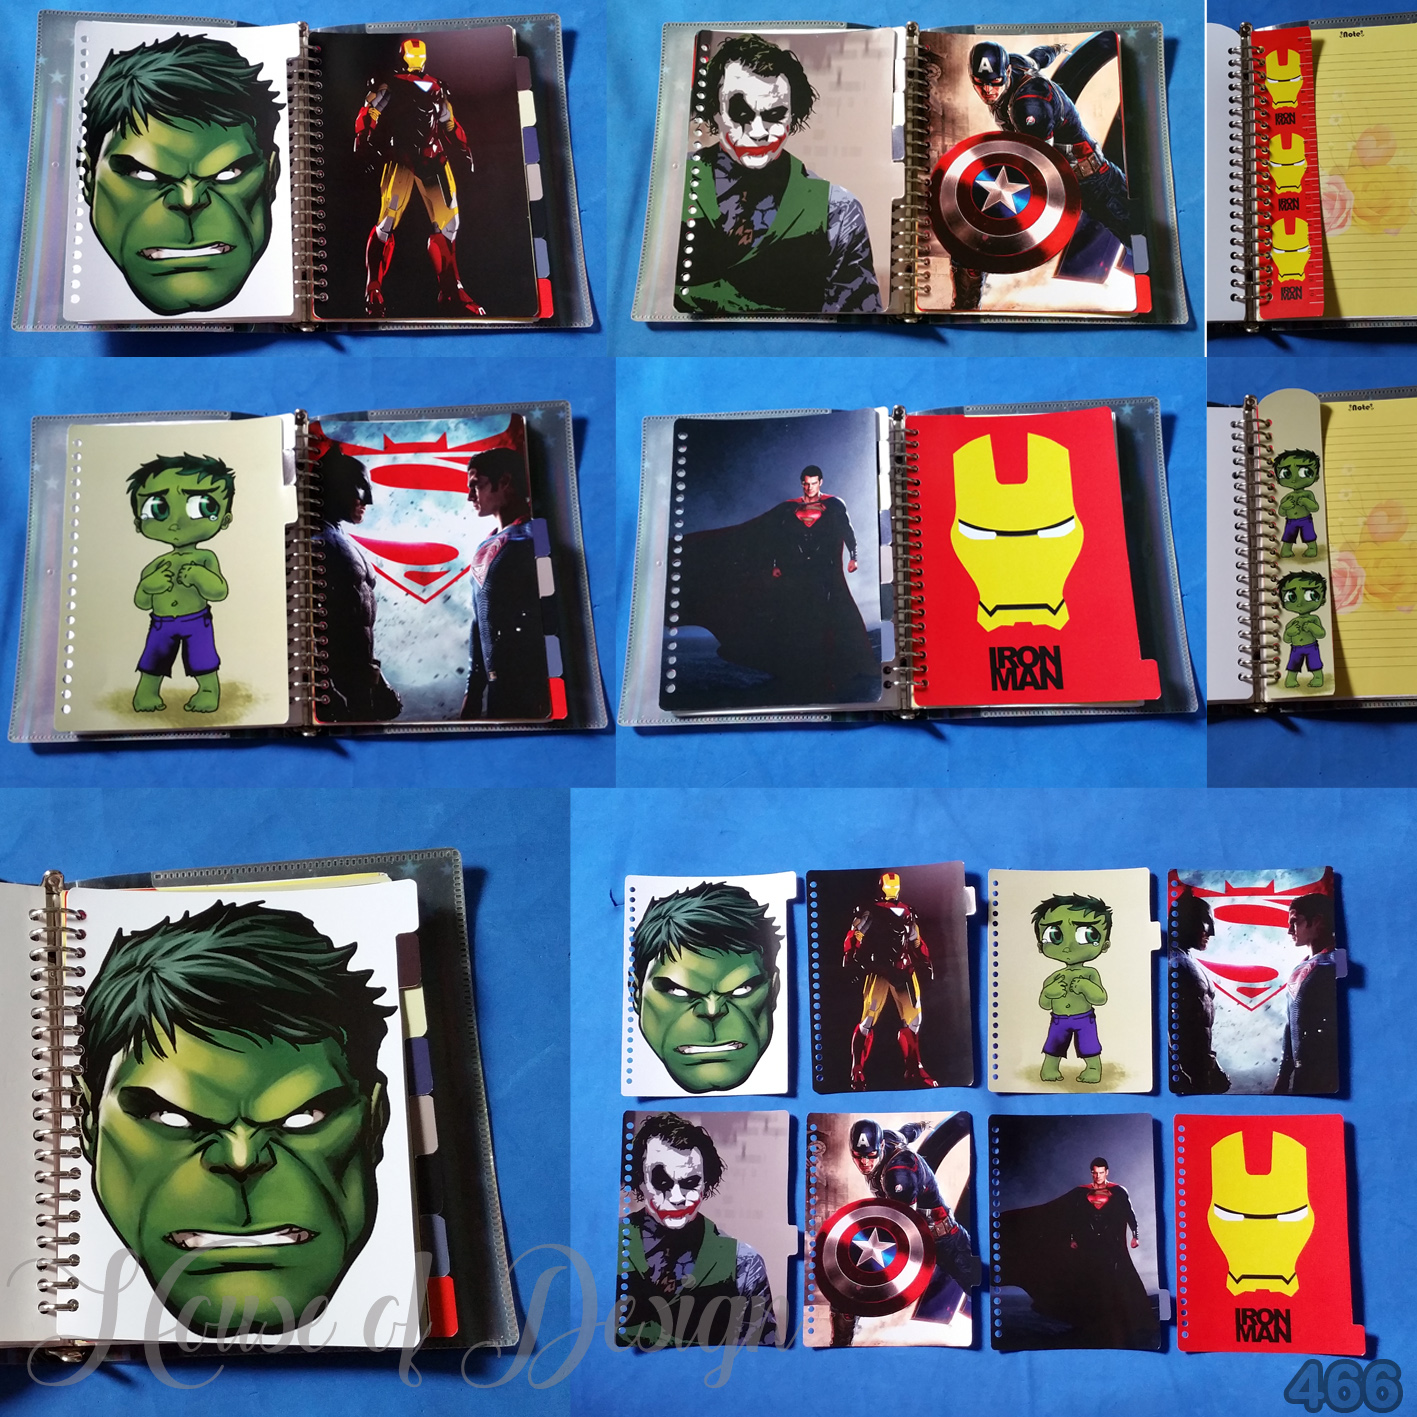 PEMBATAS SAMPING, PENGGARIS BINDER 20 RING UKURAN A5 SUPERHERO CUSTOM